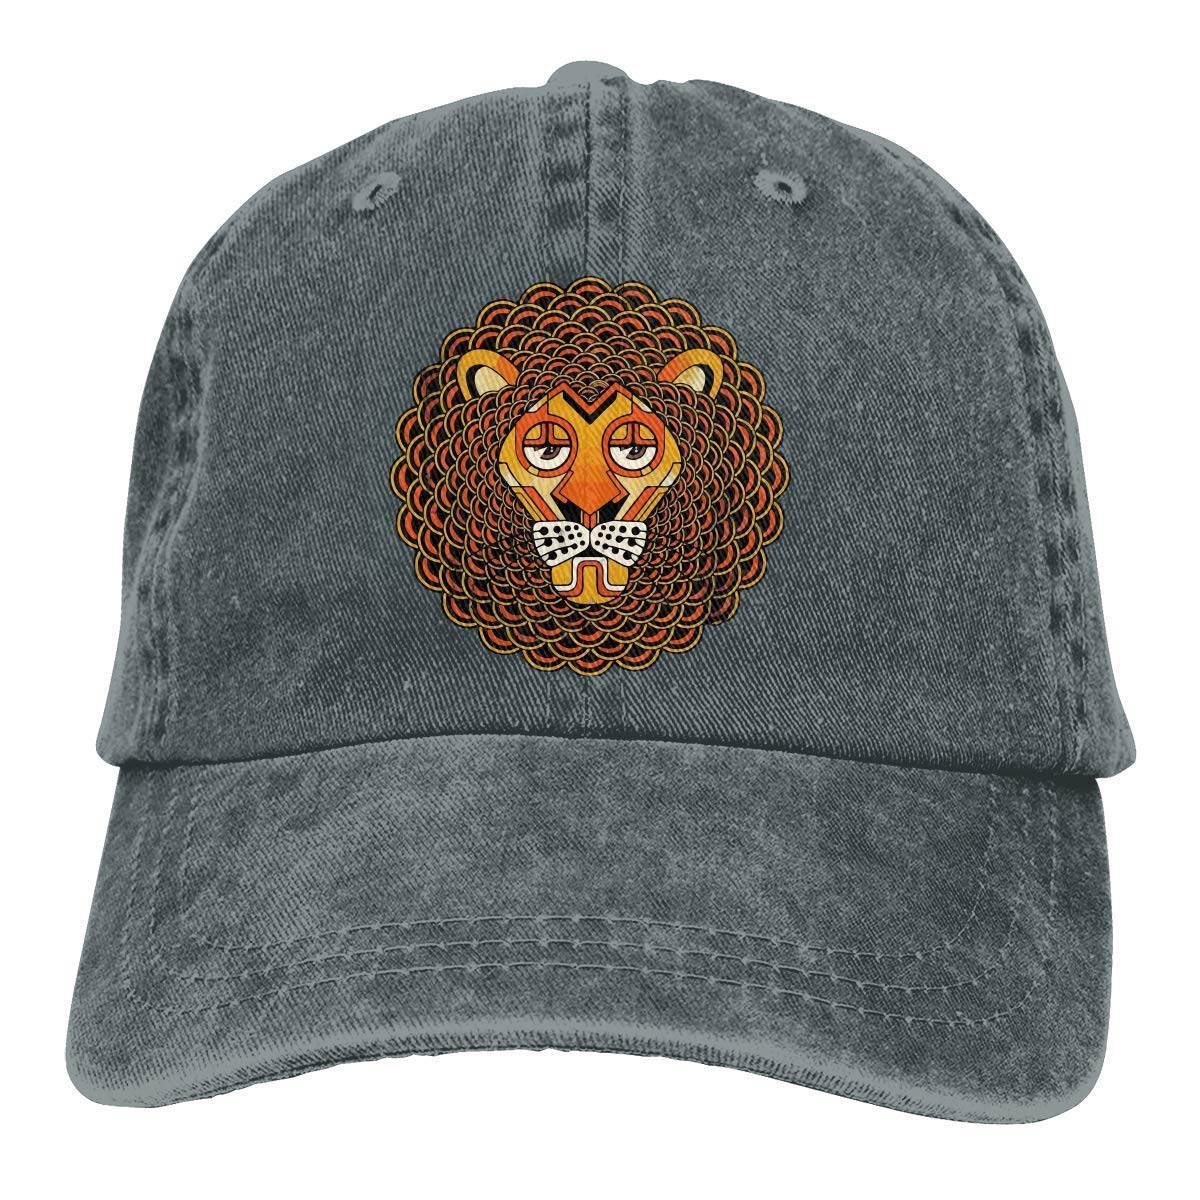 Yuan Kun Deco Lion-01 Unisex Washed Adjustable Fashion Cowboy Hat Denim Baseball Caps